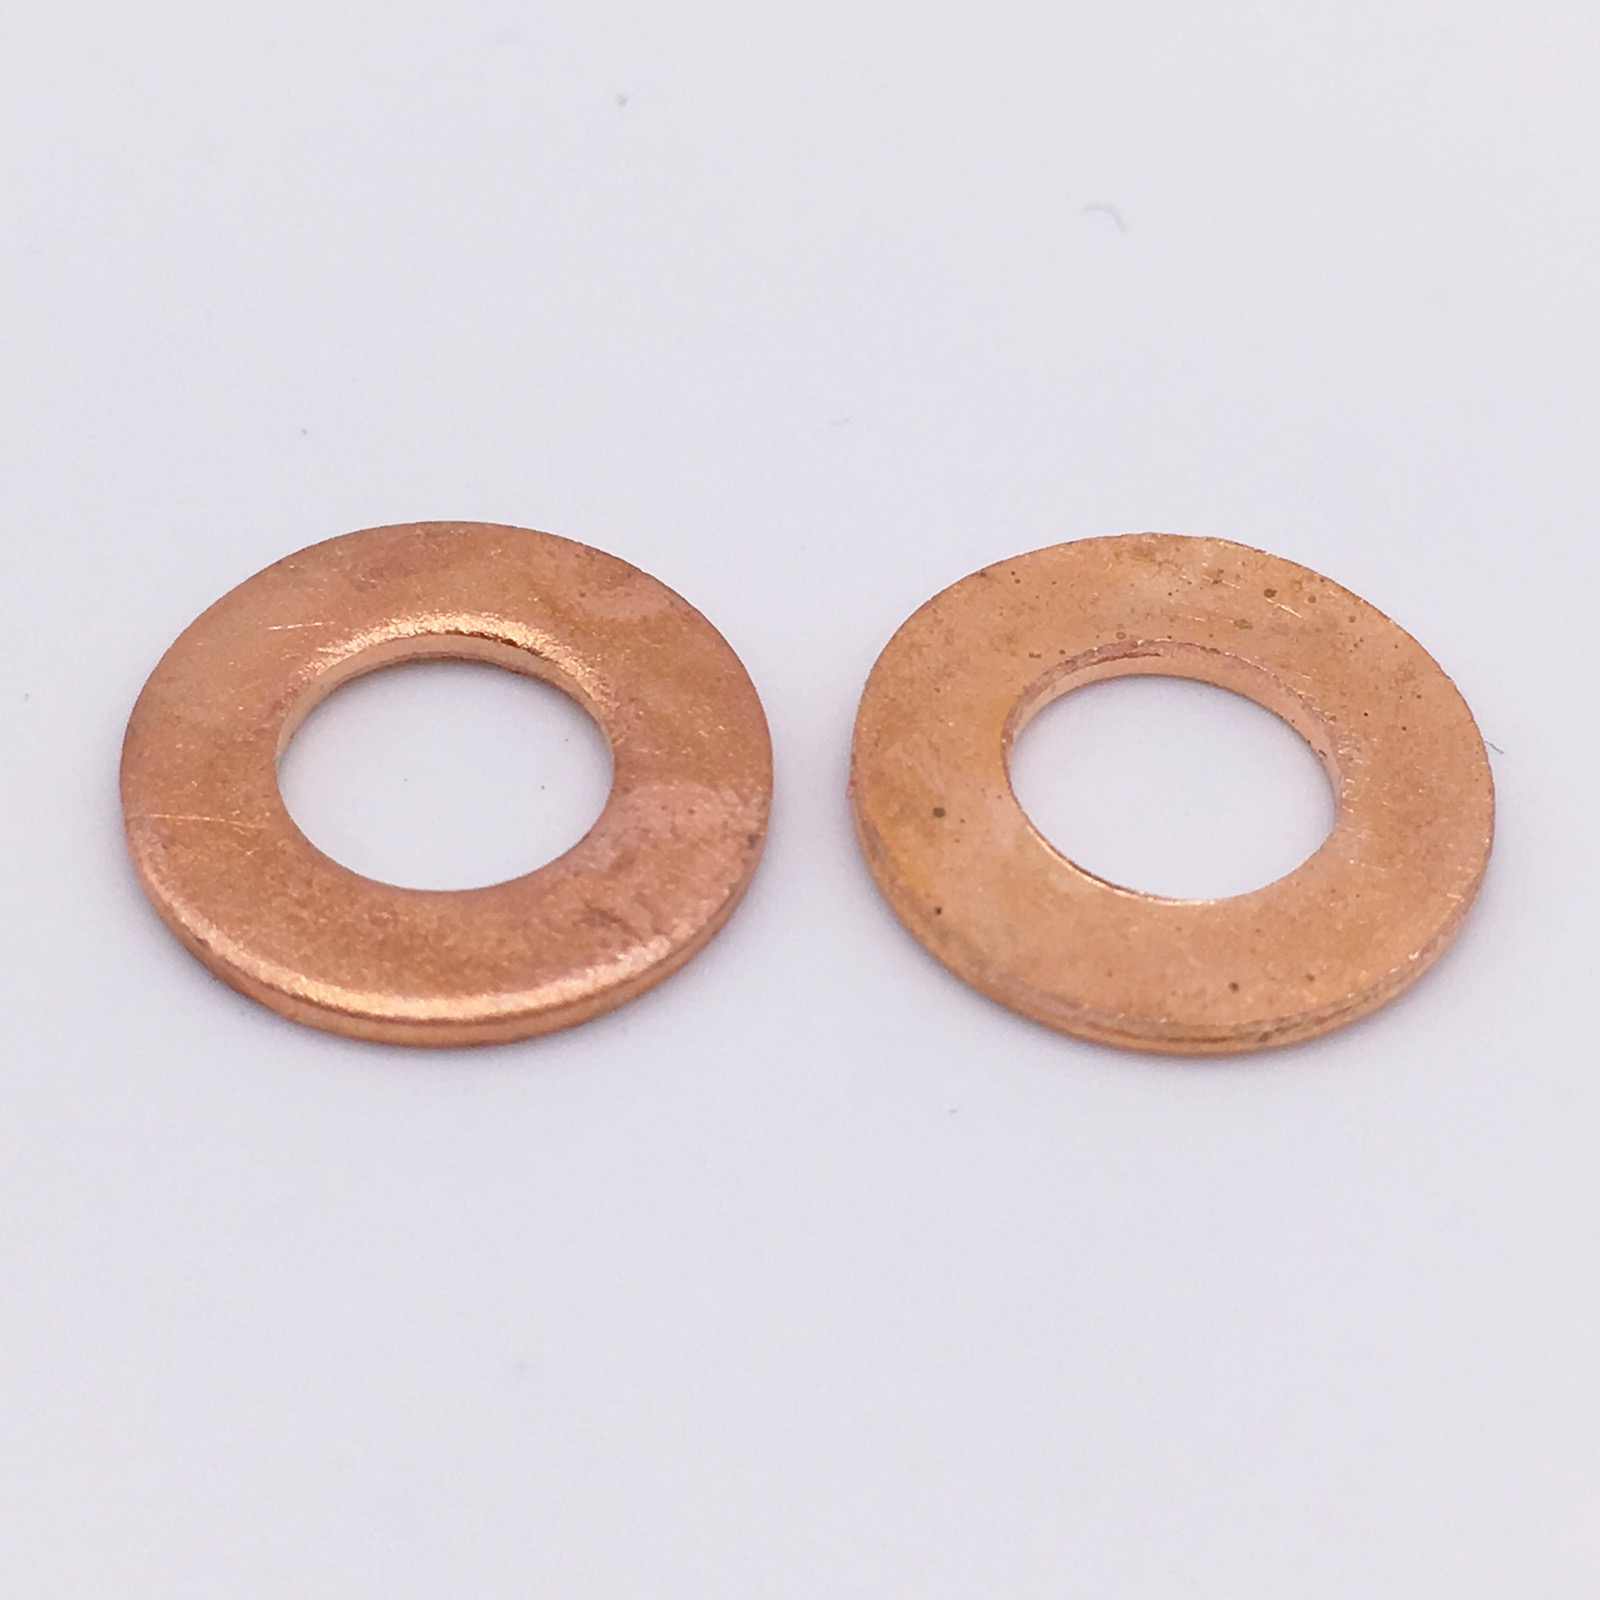 Copper Washers 14mm x 22mm x 1.5mm Pack of 10